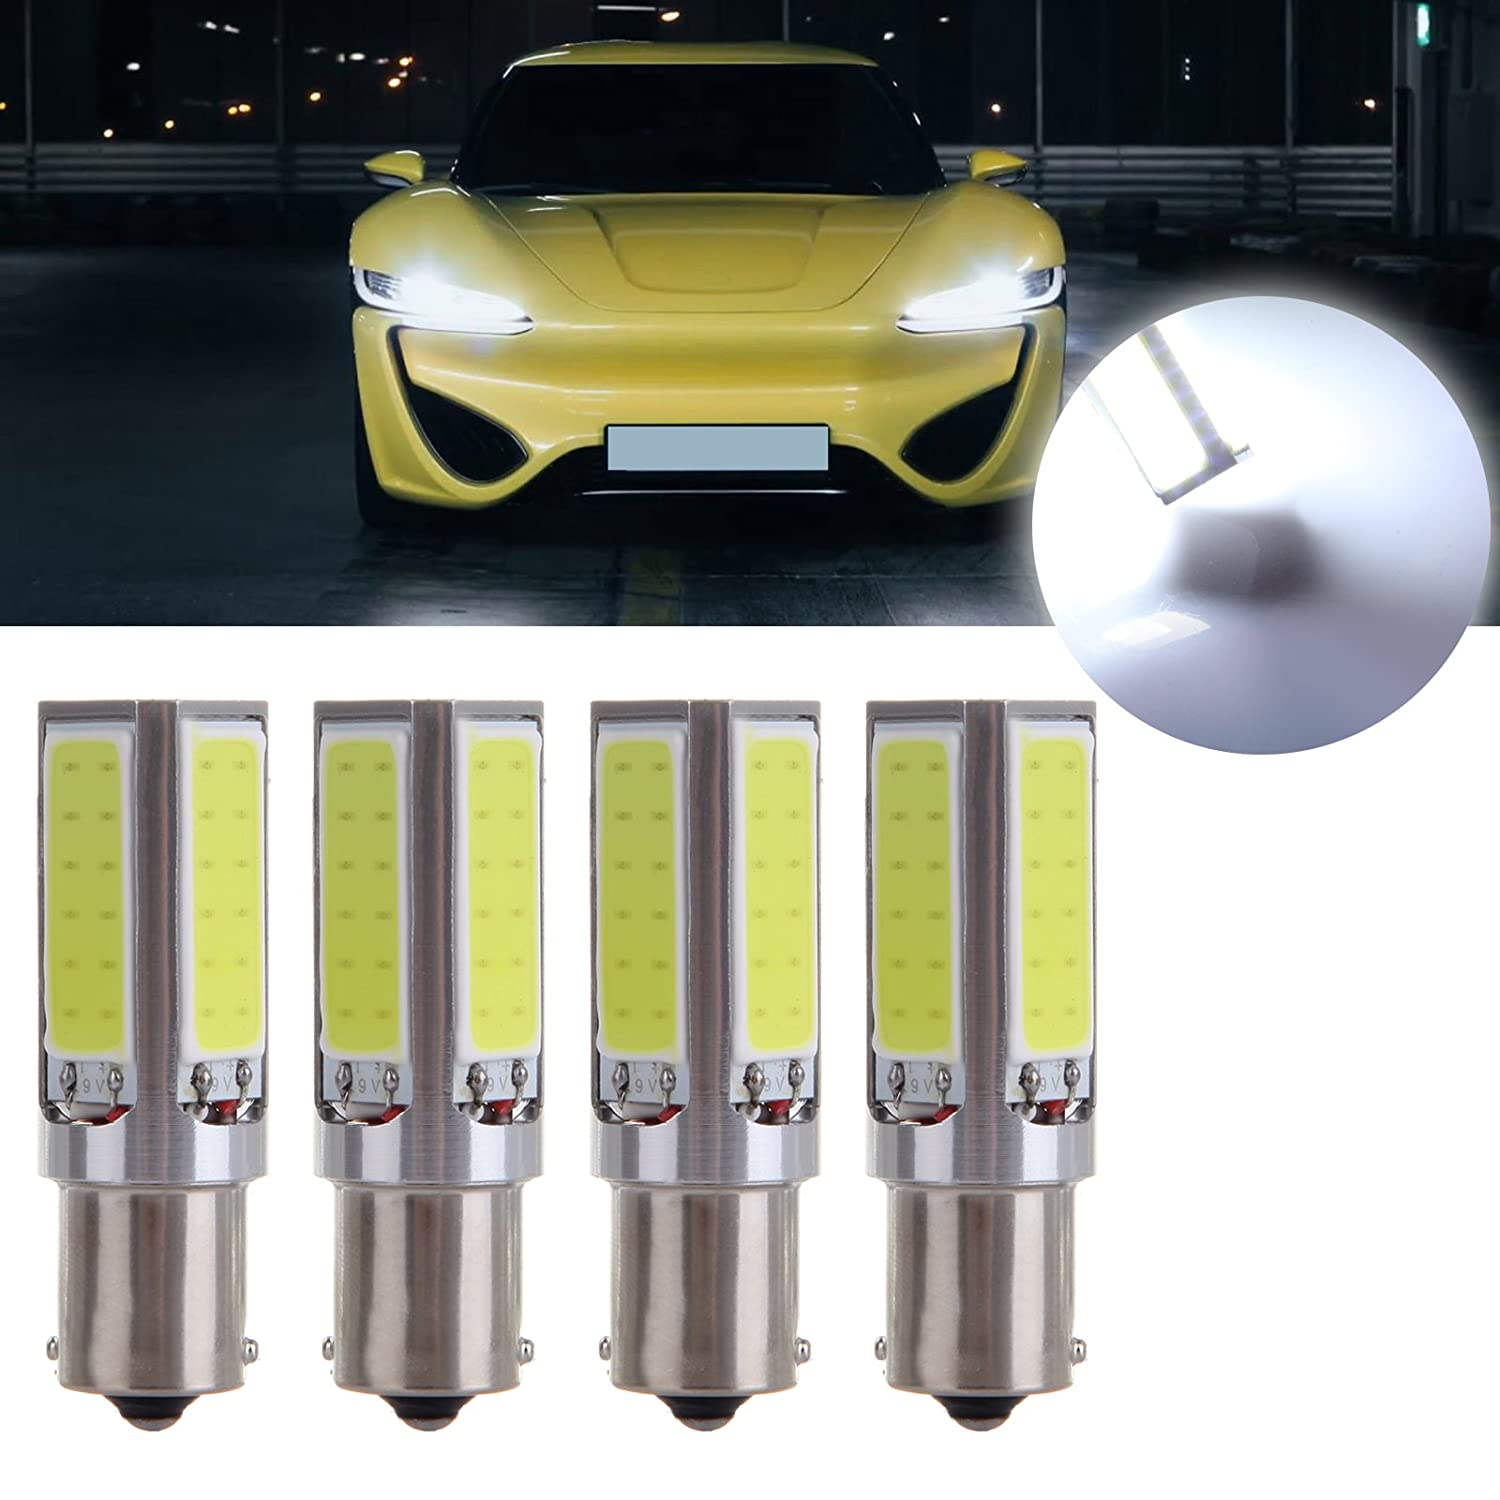 cciyu 1156 Super Bright 20W COB Chips LED Bulbs Replacement fit for Back Up Reverse Lights, 4Pack White 808333-5210-1126141